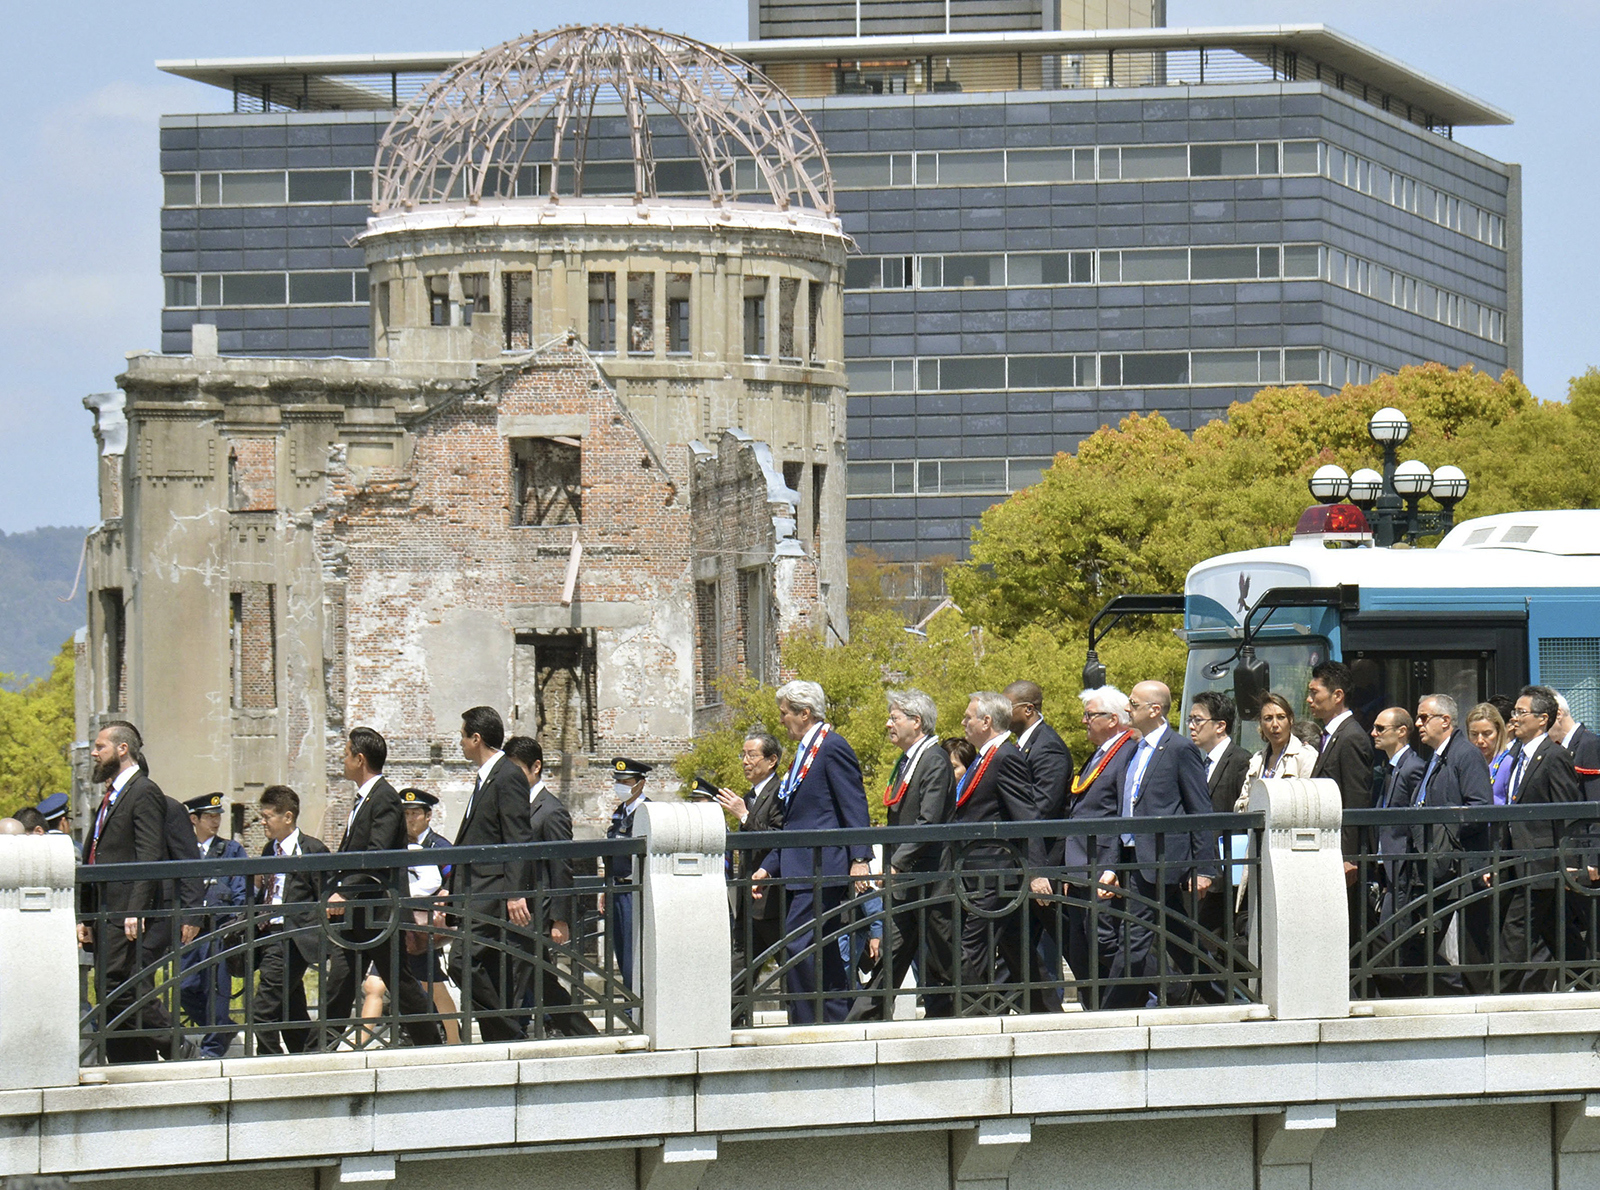 U.S. Secretary of State John Kerry, center, walks past A-Bomb Dome after visiting the site in Hiroshima, western Japan Monday, April 11, 2016. Kerry visited the revered memorial to Hiroshima's atomic bombing on Monday, delivering a message of peace and hope for a nuclear-free world seven decades after United States used the weapon for the first time in history and killed 140,000 Japanese. (Shingo Nishizume/Kyodo News via AP)